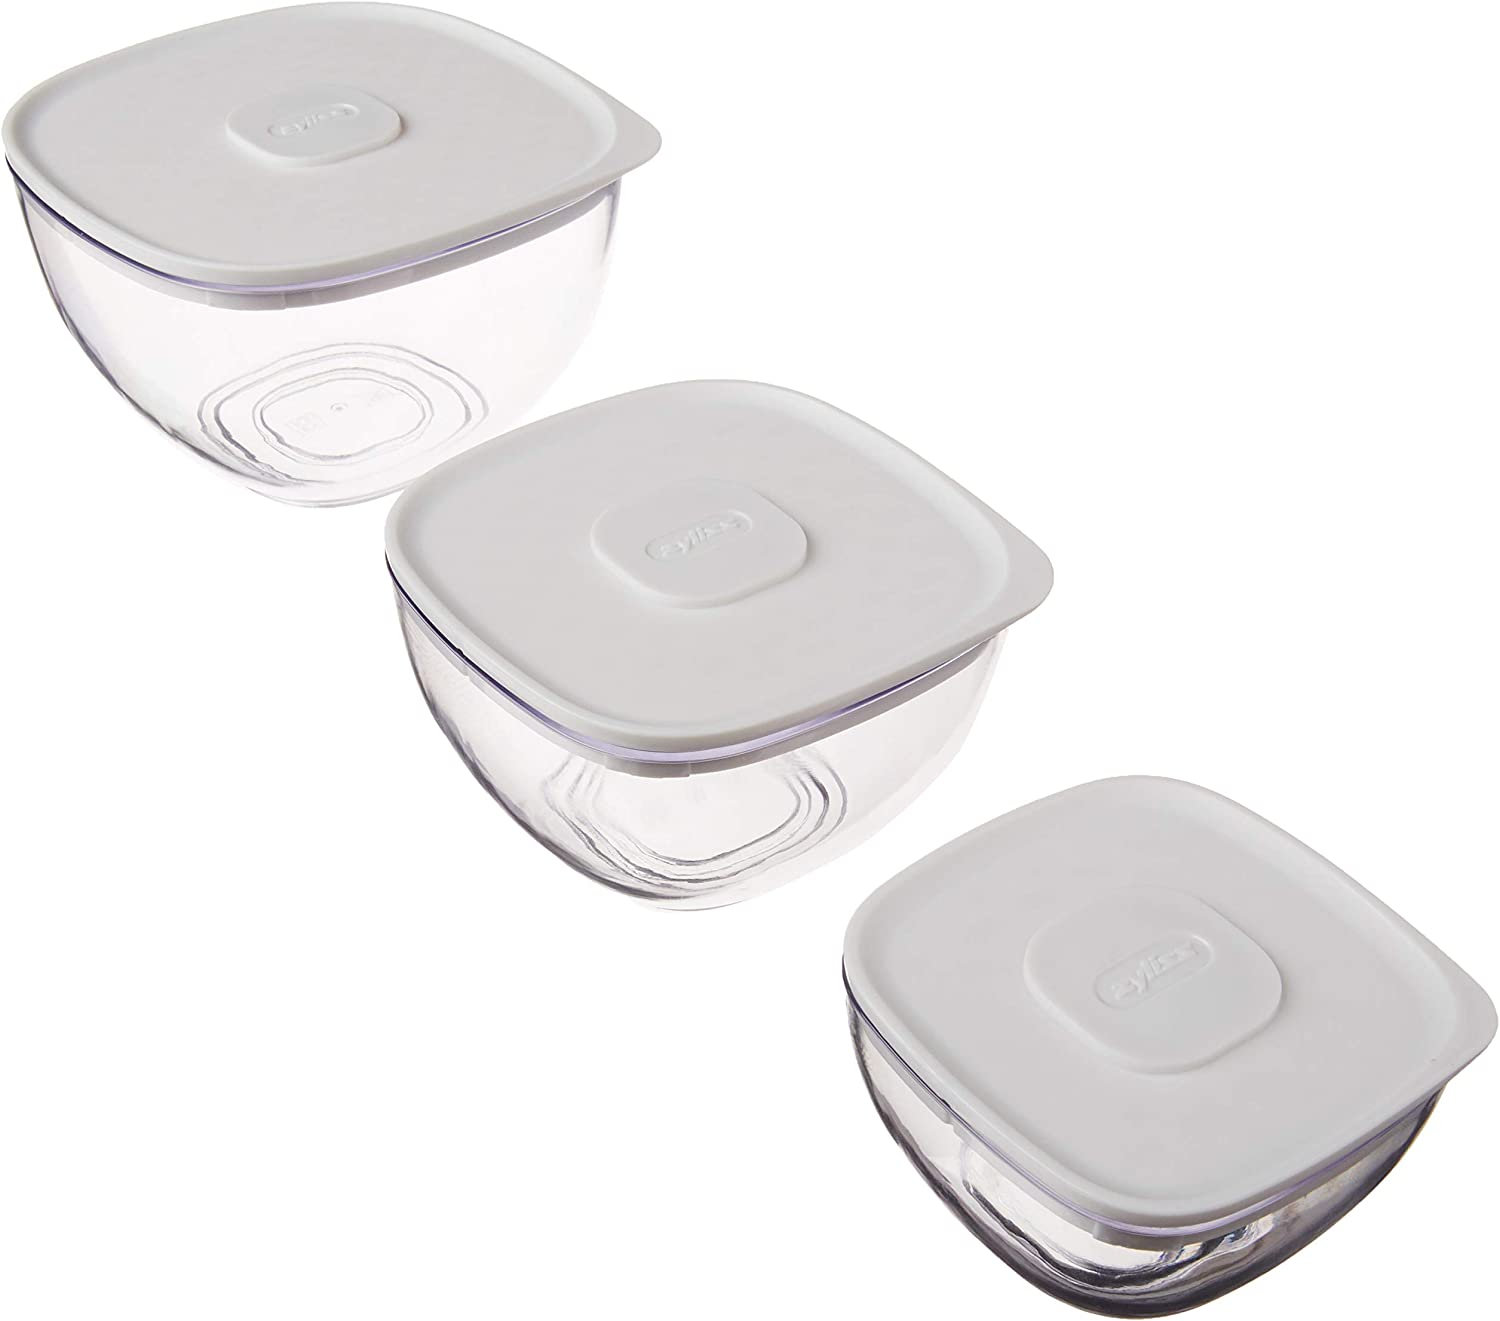 Zyliss 3-Piece Food Keeper Value Set, Sm, Md, Lg, Clear